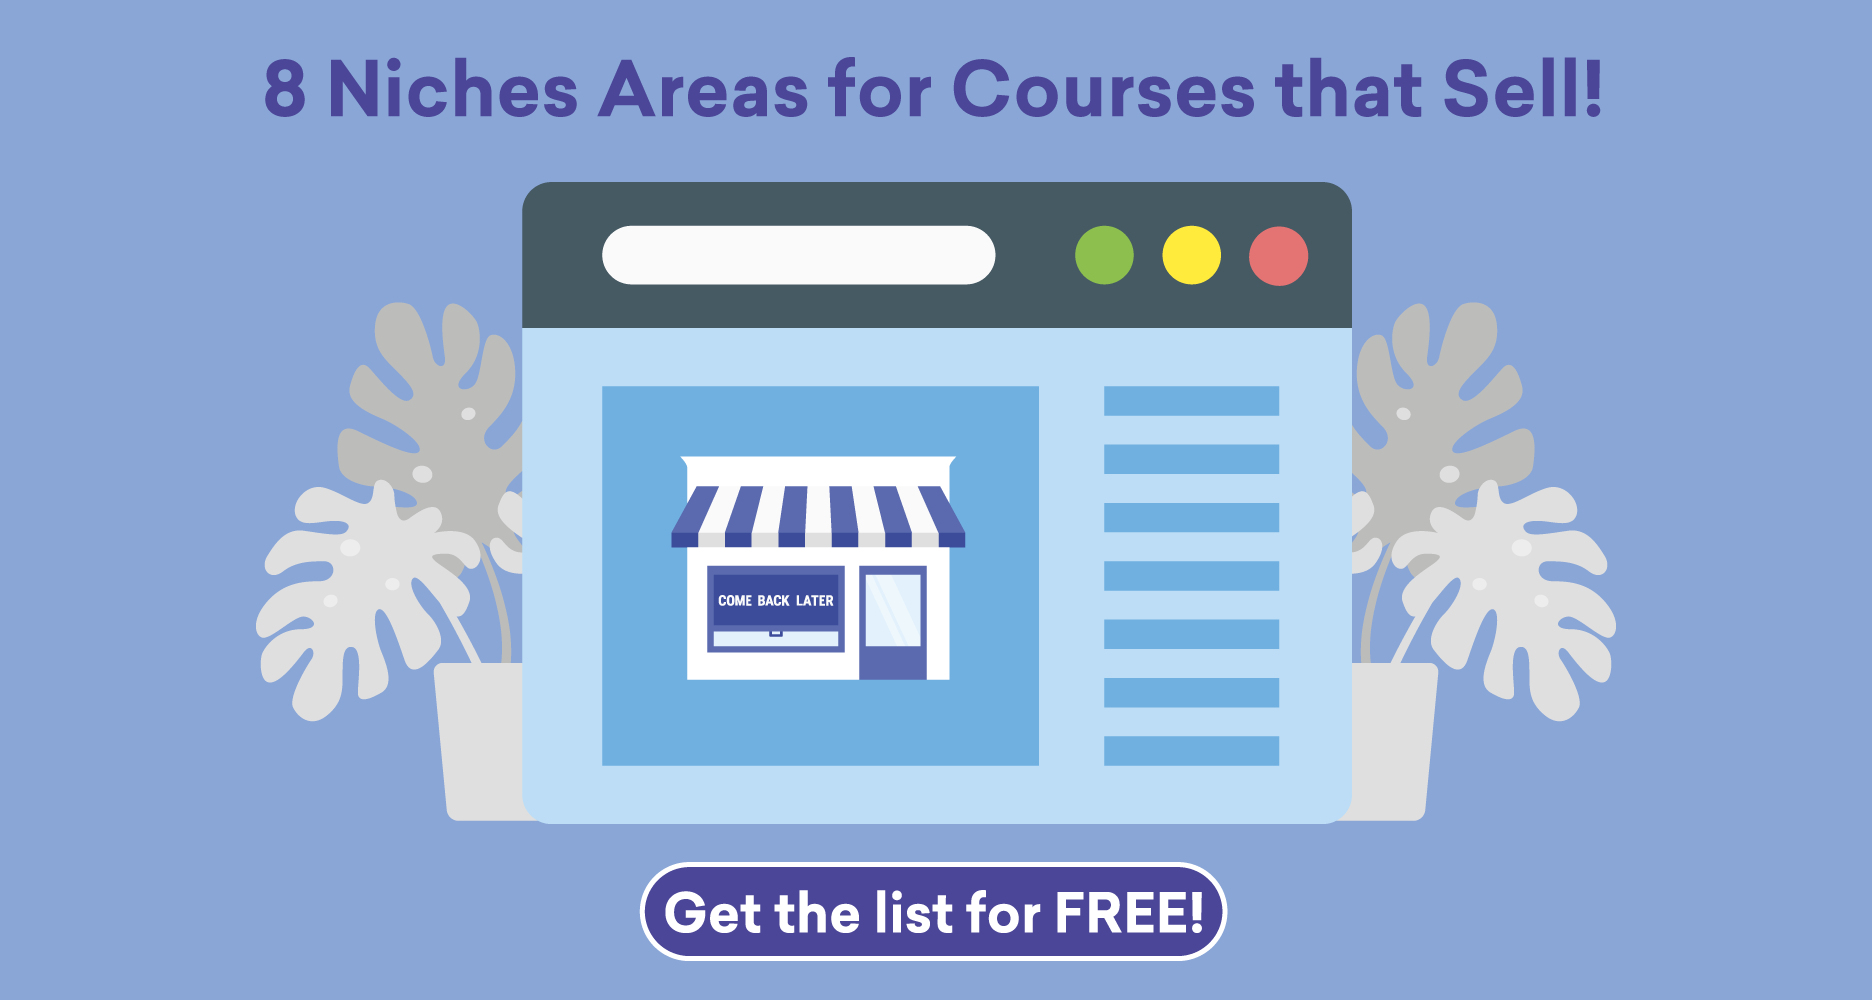 8 Niche Areas for Courses That Sell